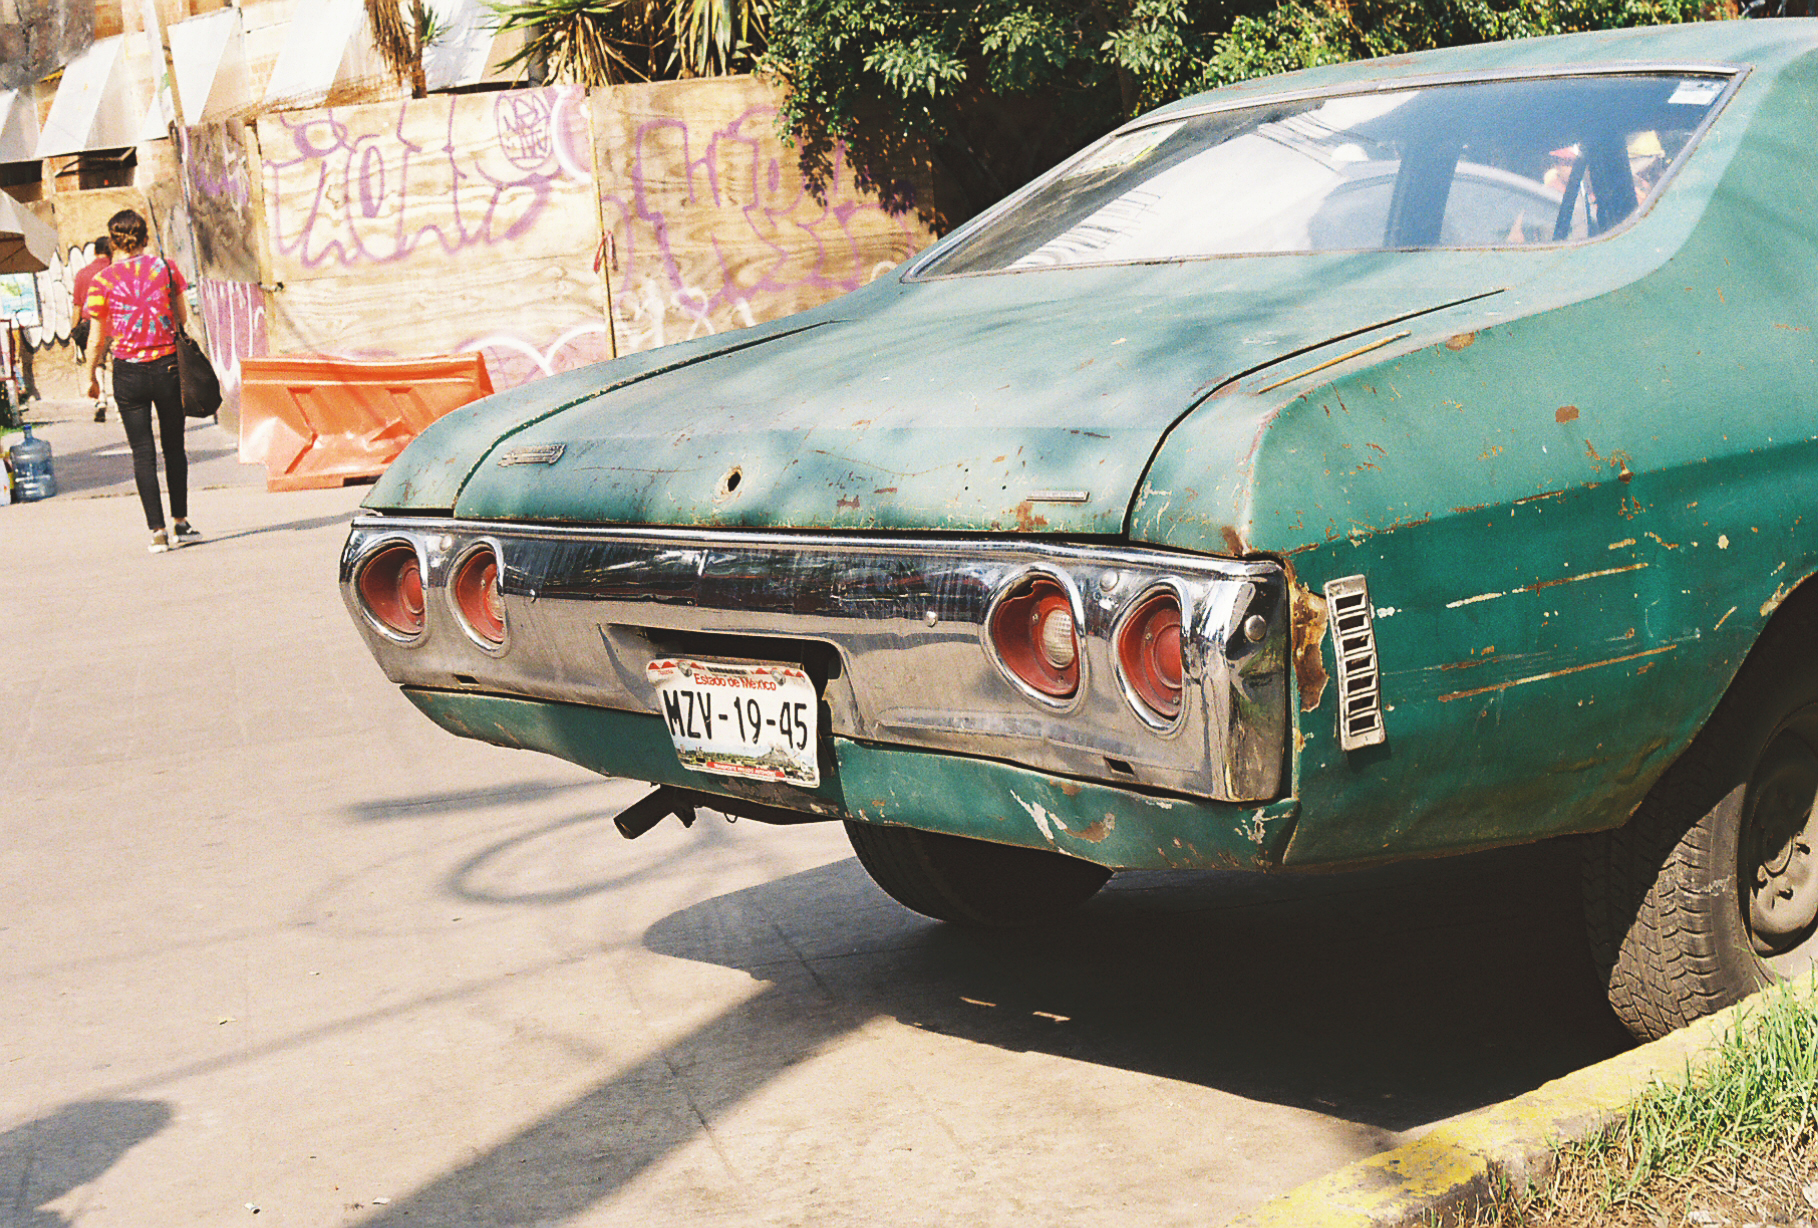 The rear of a large teal rusty classic American muscle car. Mexico City. Photographer Nick Barry